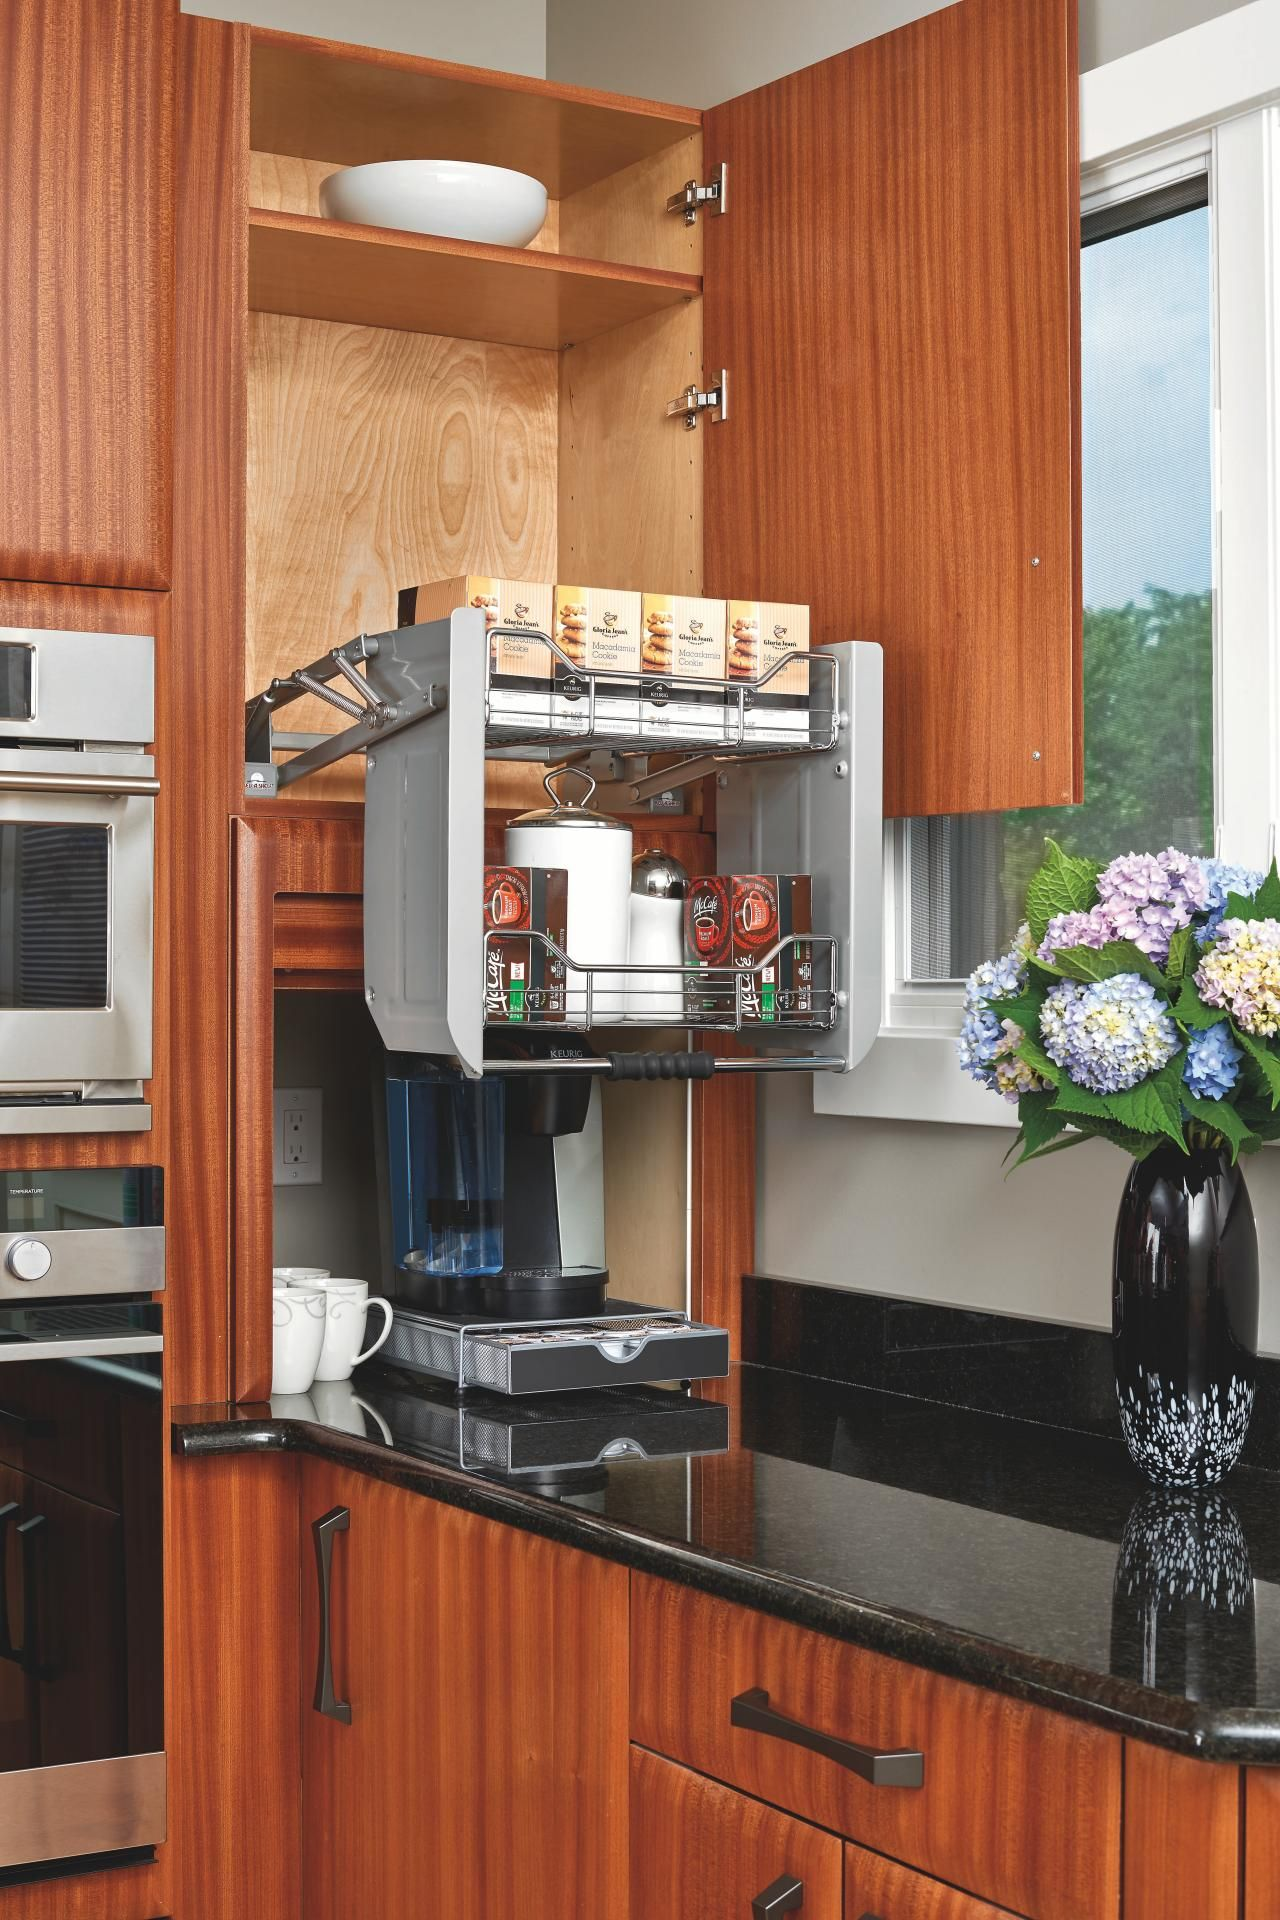 Upper Kitchen Cabinets Industrial Lighting Can T Reach The Items You Ve Stored In Your A Pull Down Shelf Is Perfect Solution This Space It Makes Coffee And Tea